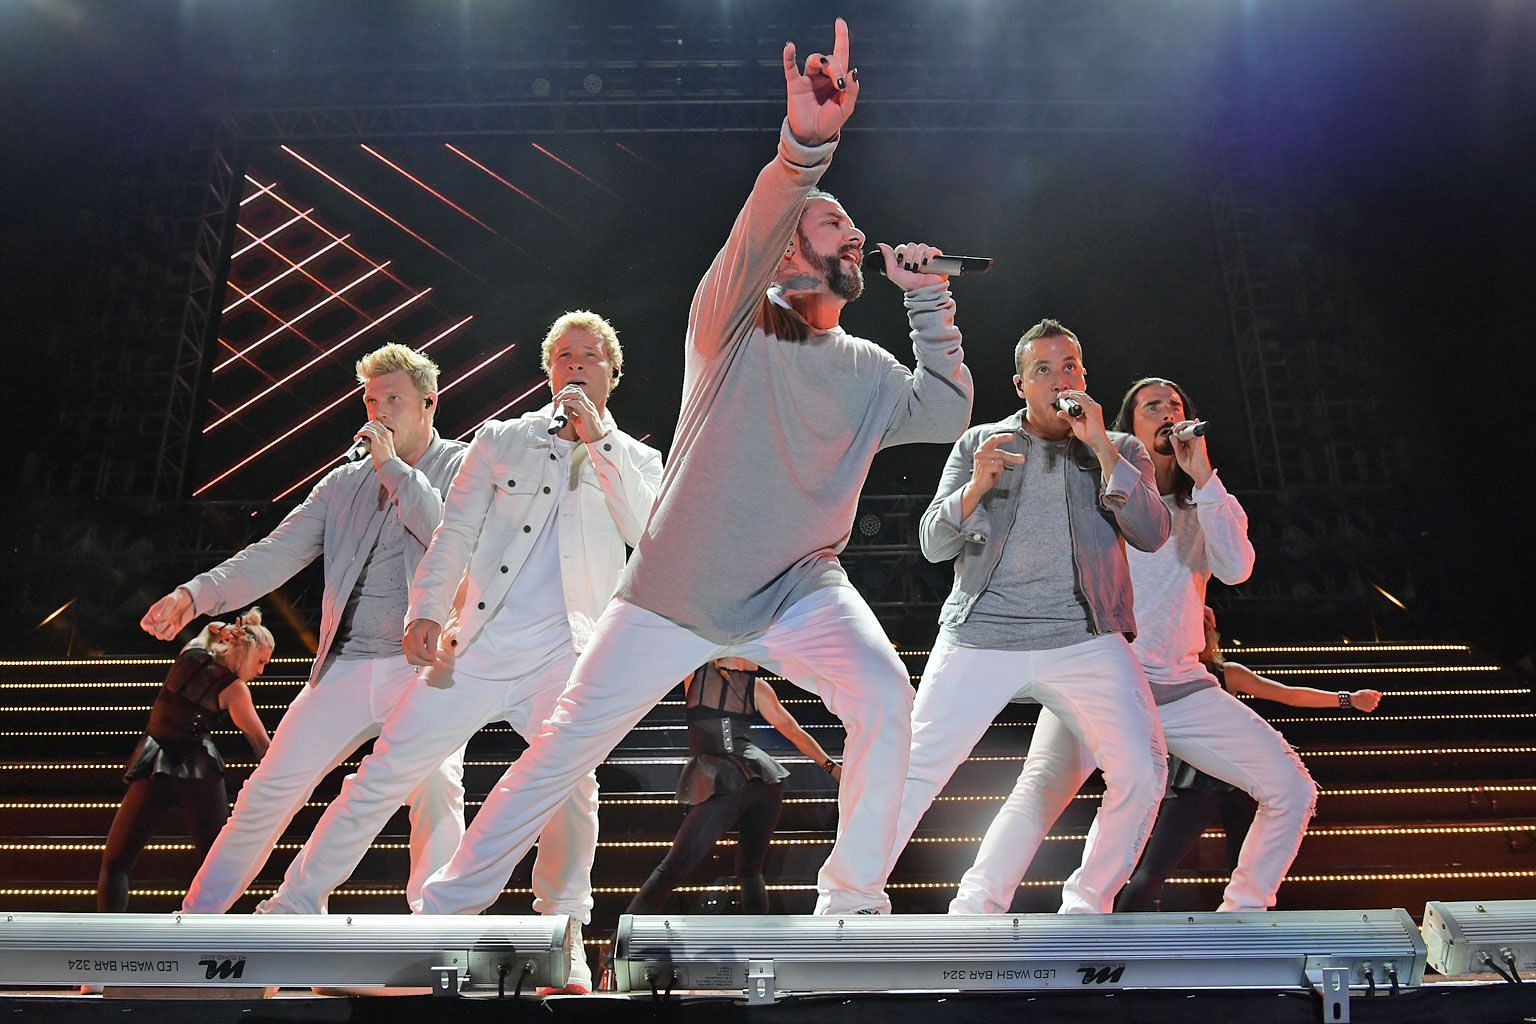 Backstreet Boys' (from far left) Nick Carter, Brian Littrell, AJ McLean, Howie Dorough and Kevin Richardson performed at the National Stadium in October 2017.